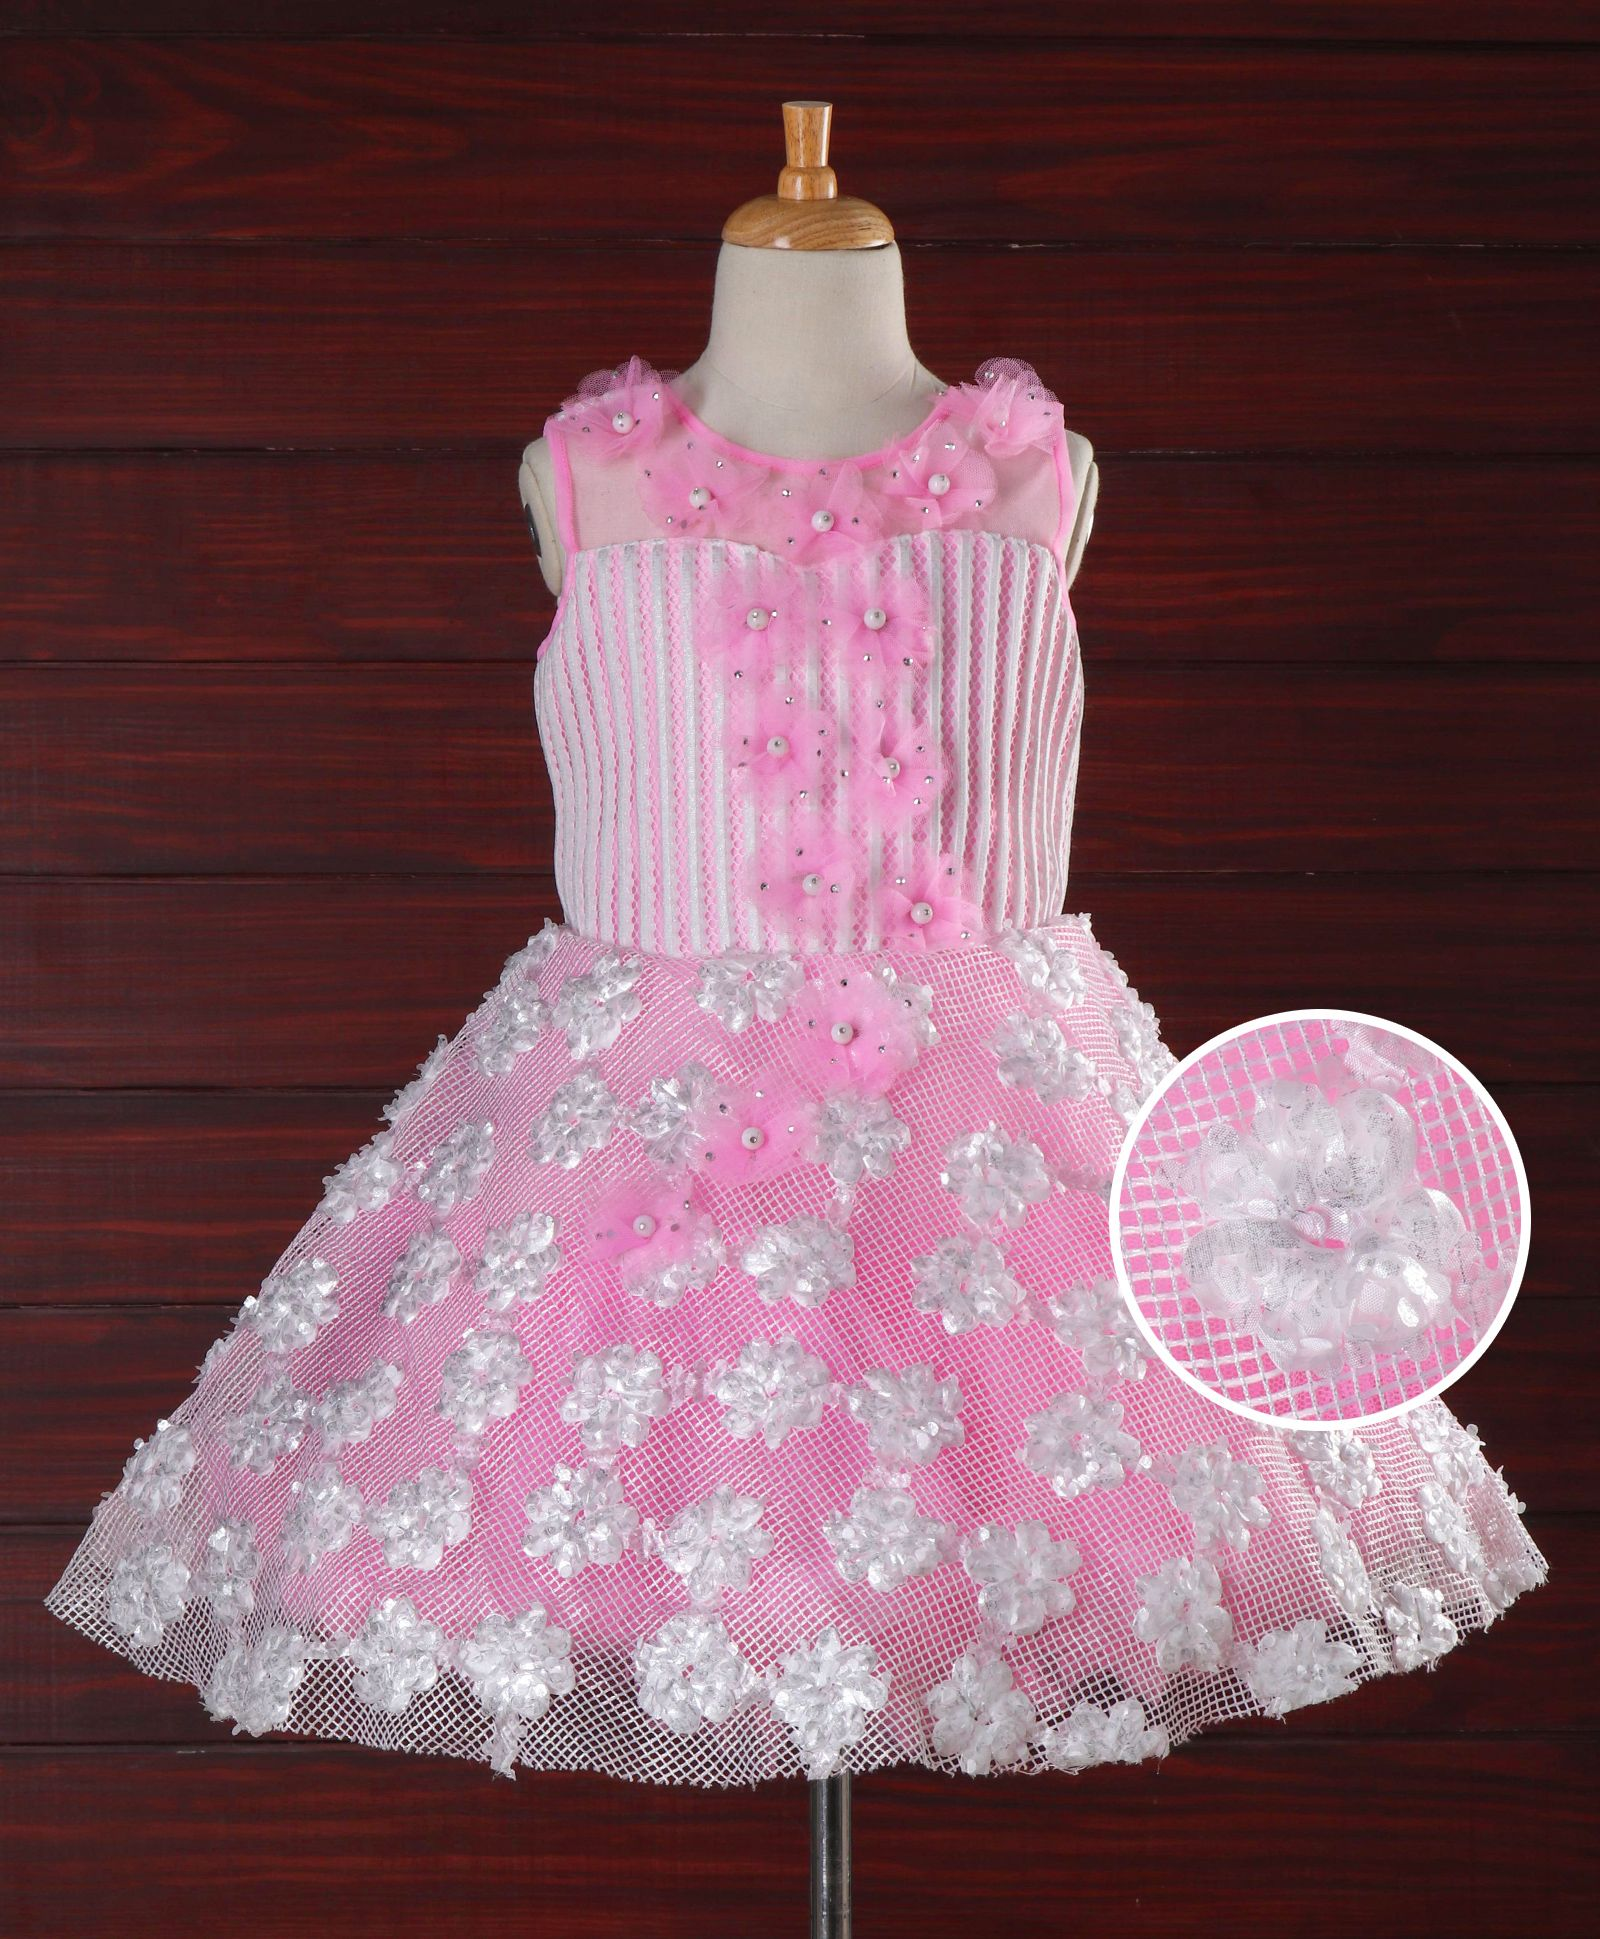 b2f280029c Buy Enfance Glitter Work Sleeveless Party Wear Dress Pink for Girls (6-12  Months) Online in India, Shop at FirstCry.com - 2146787